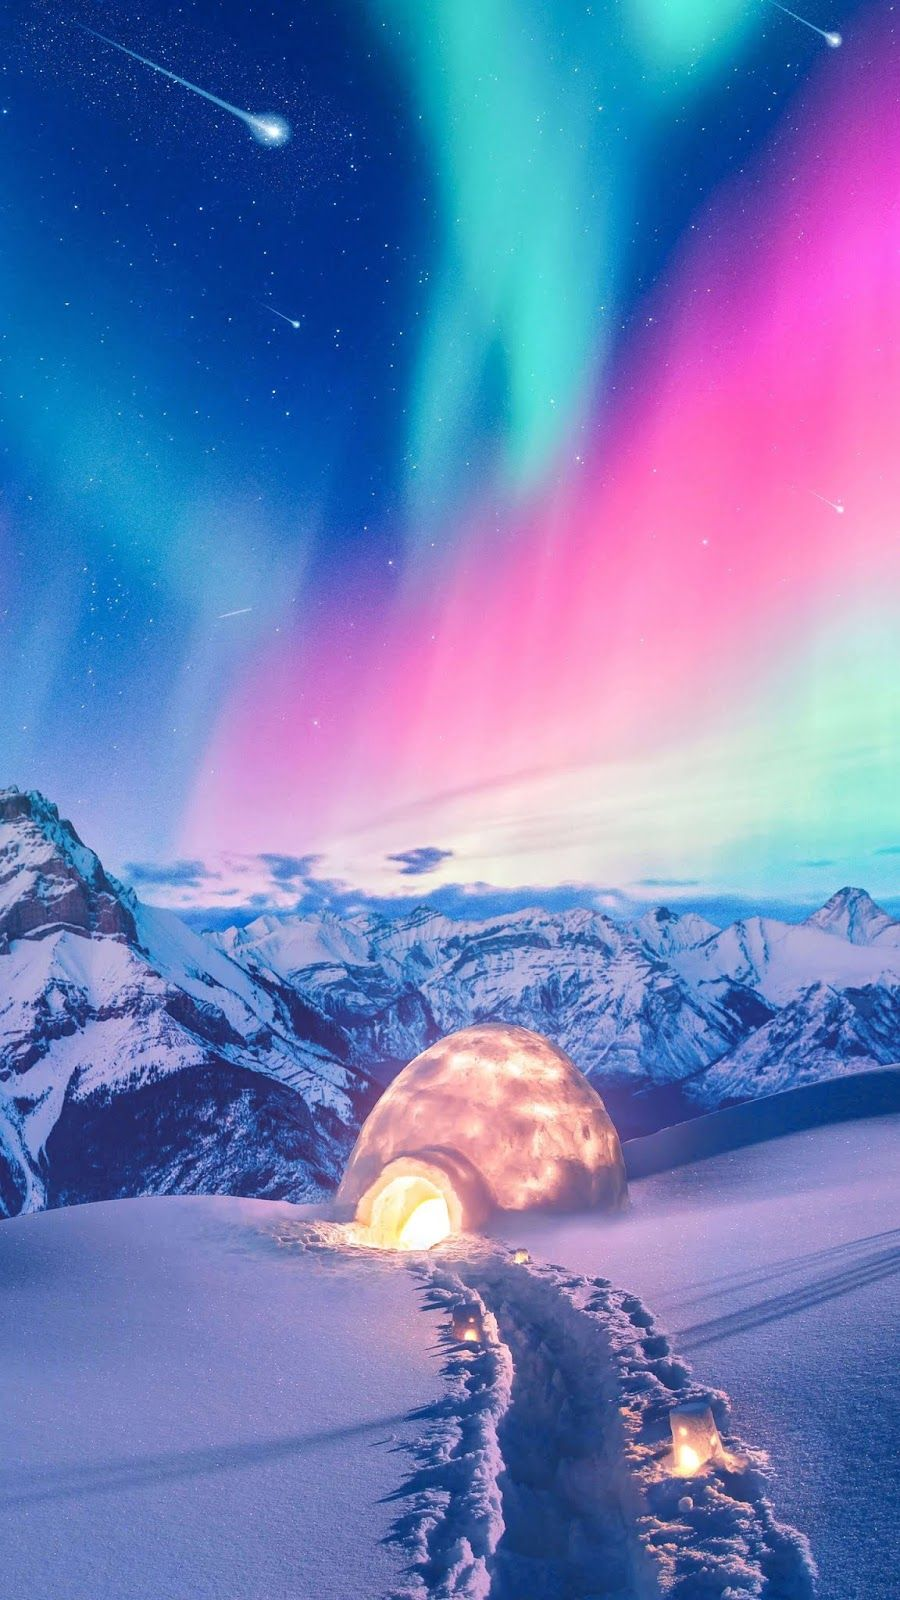 Colorful Aurora Wallpaper Iphone Android Northern Lights Wallpaper Winter Scenery Nature Wallpaper